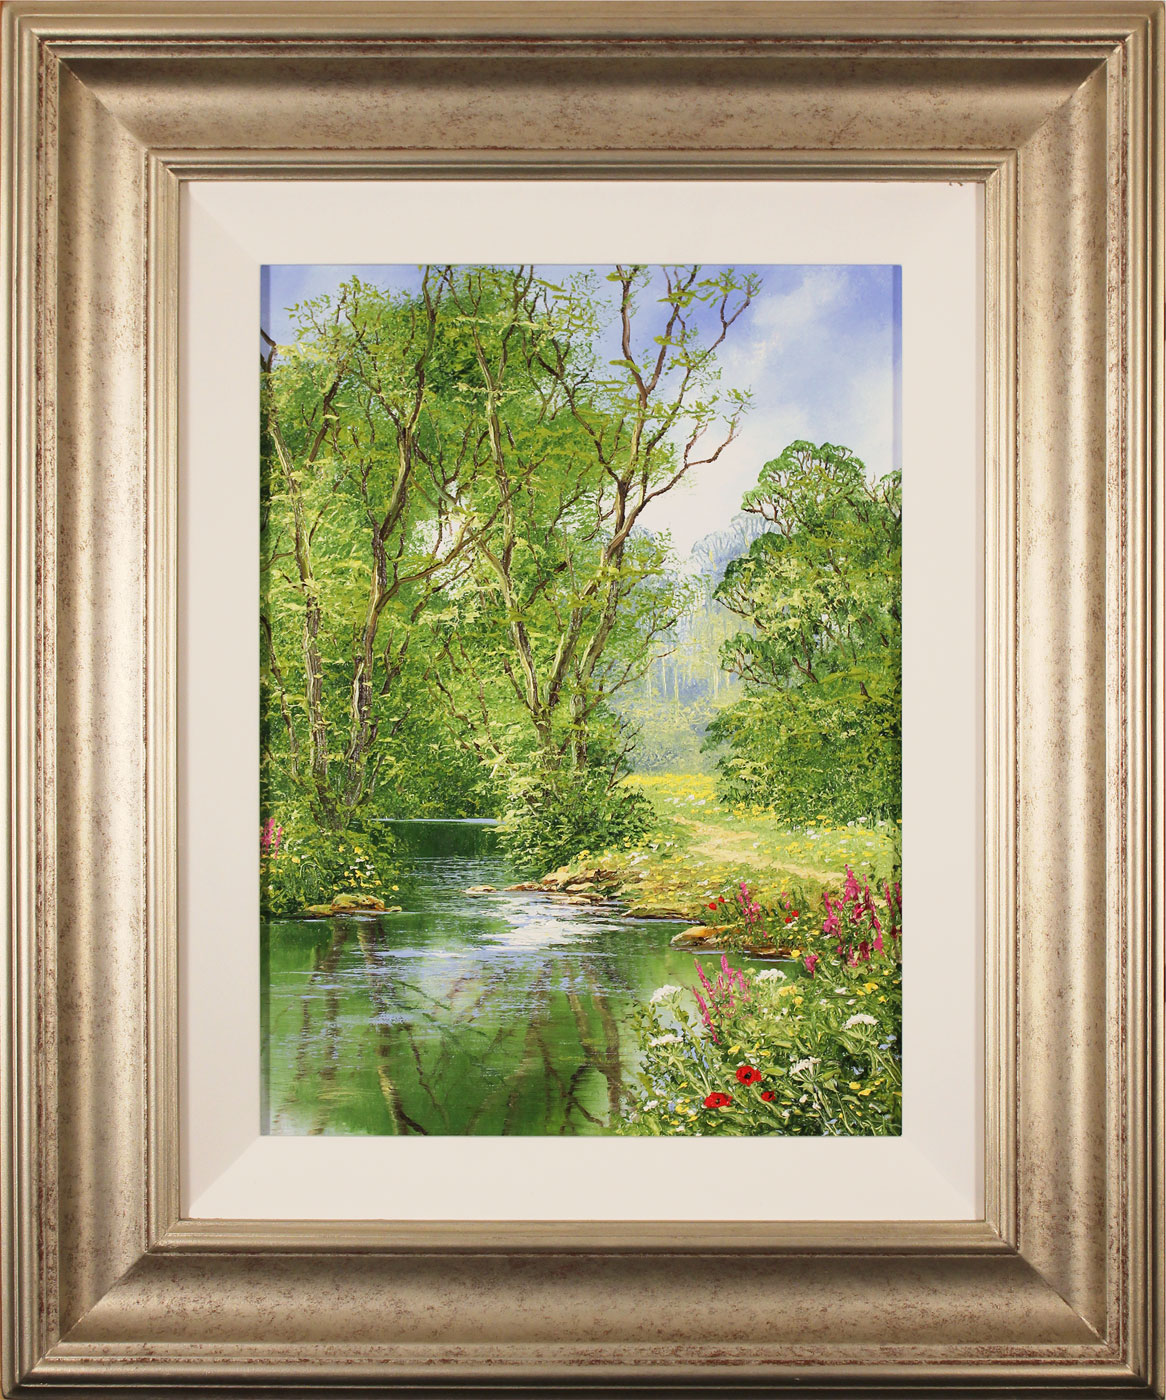 Terry Evans, Original oil painting on canvas, Woodland Walk, click to enlarge